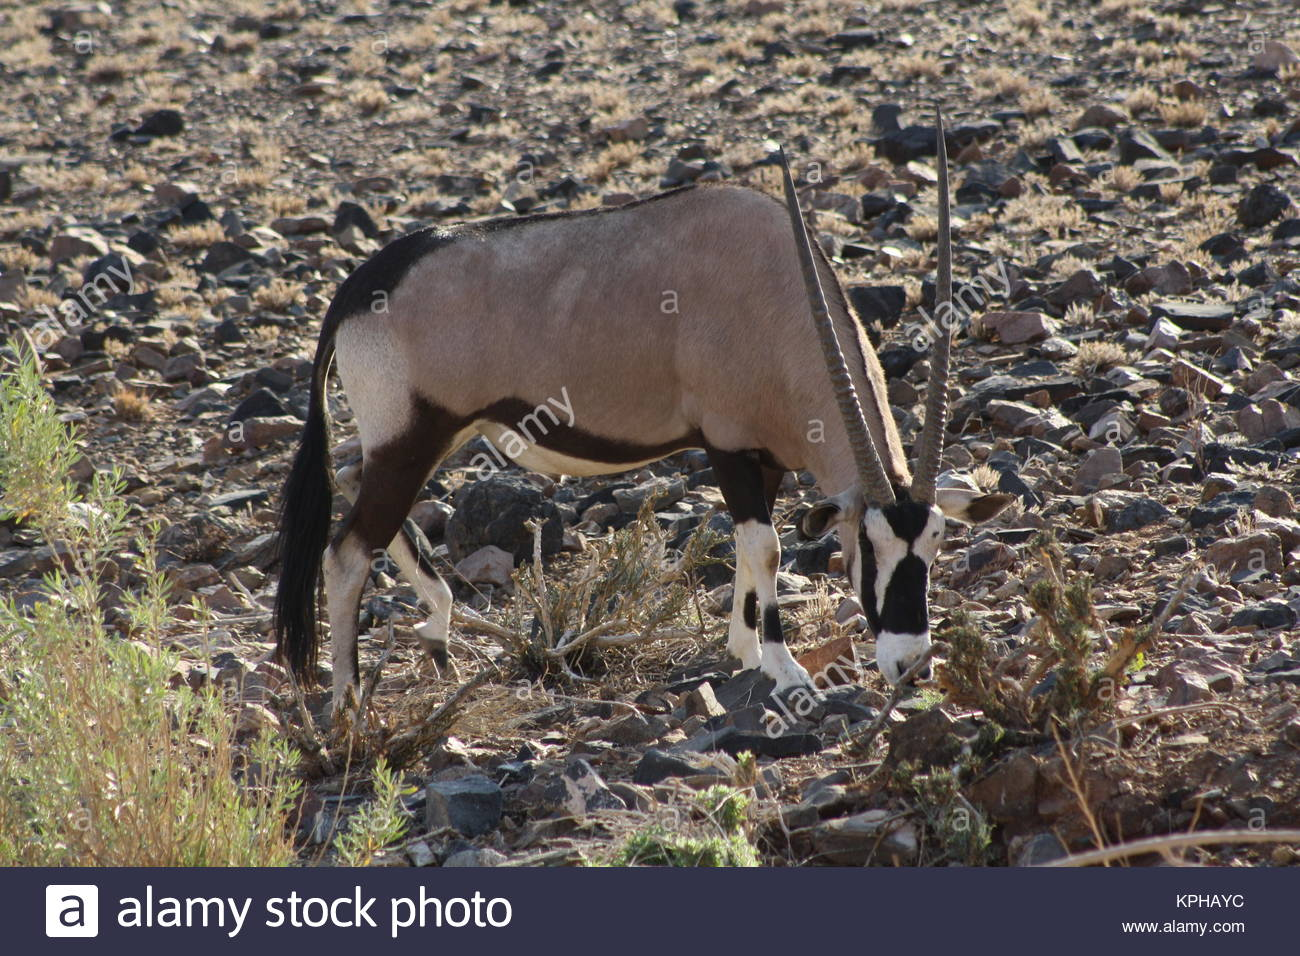 Oryx grazing among the scant vegetation in the NamibRand Nature Reserve, Namibia - Stock Image